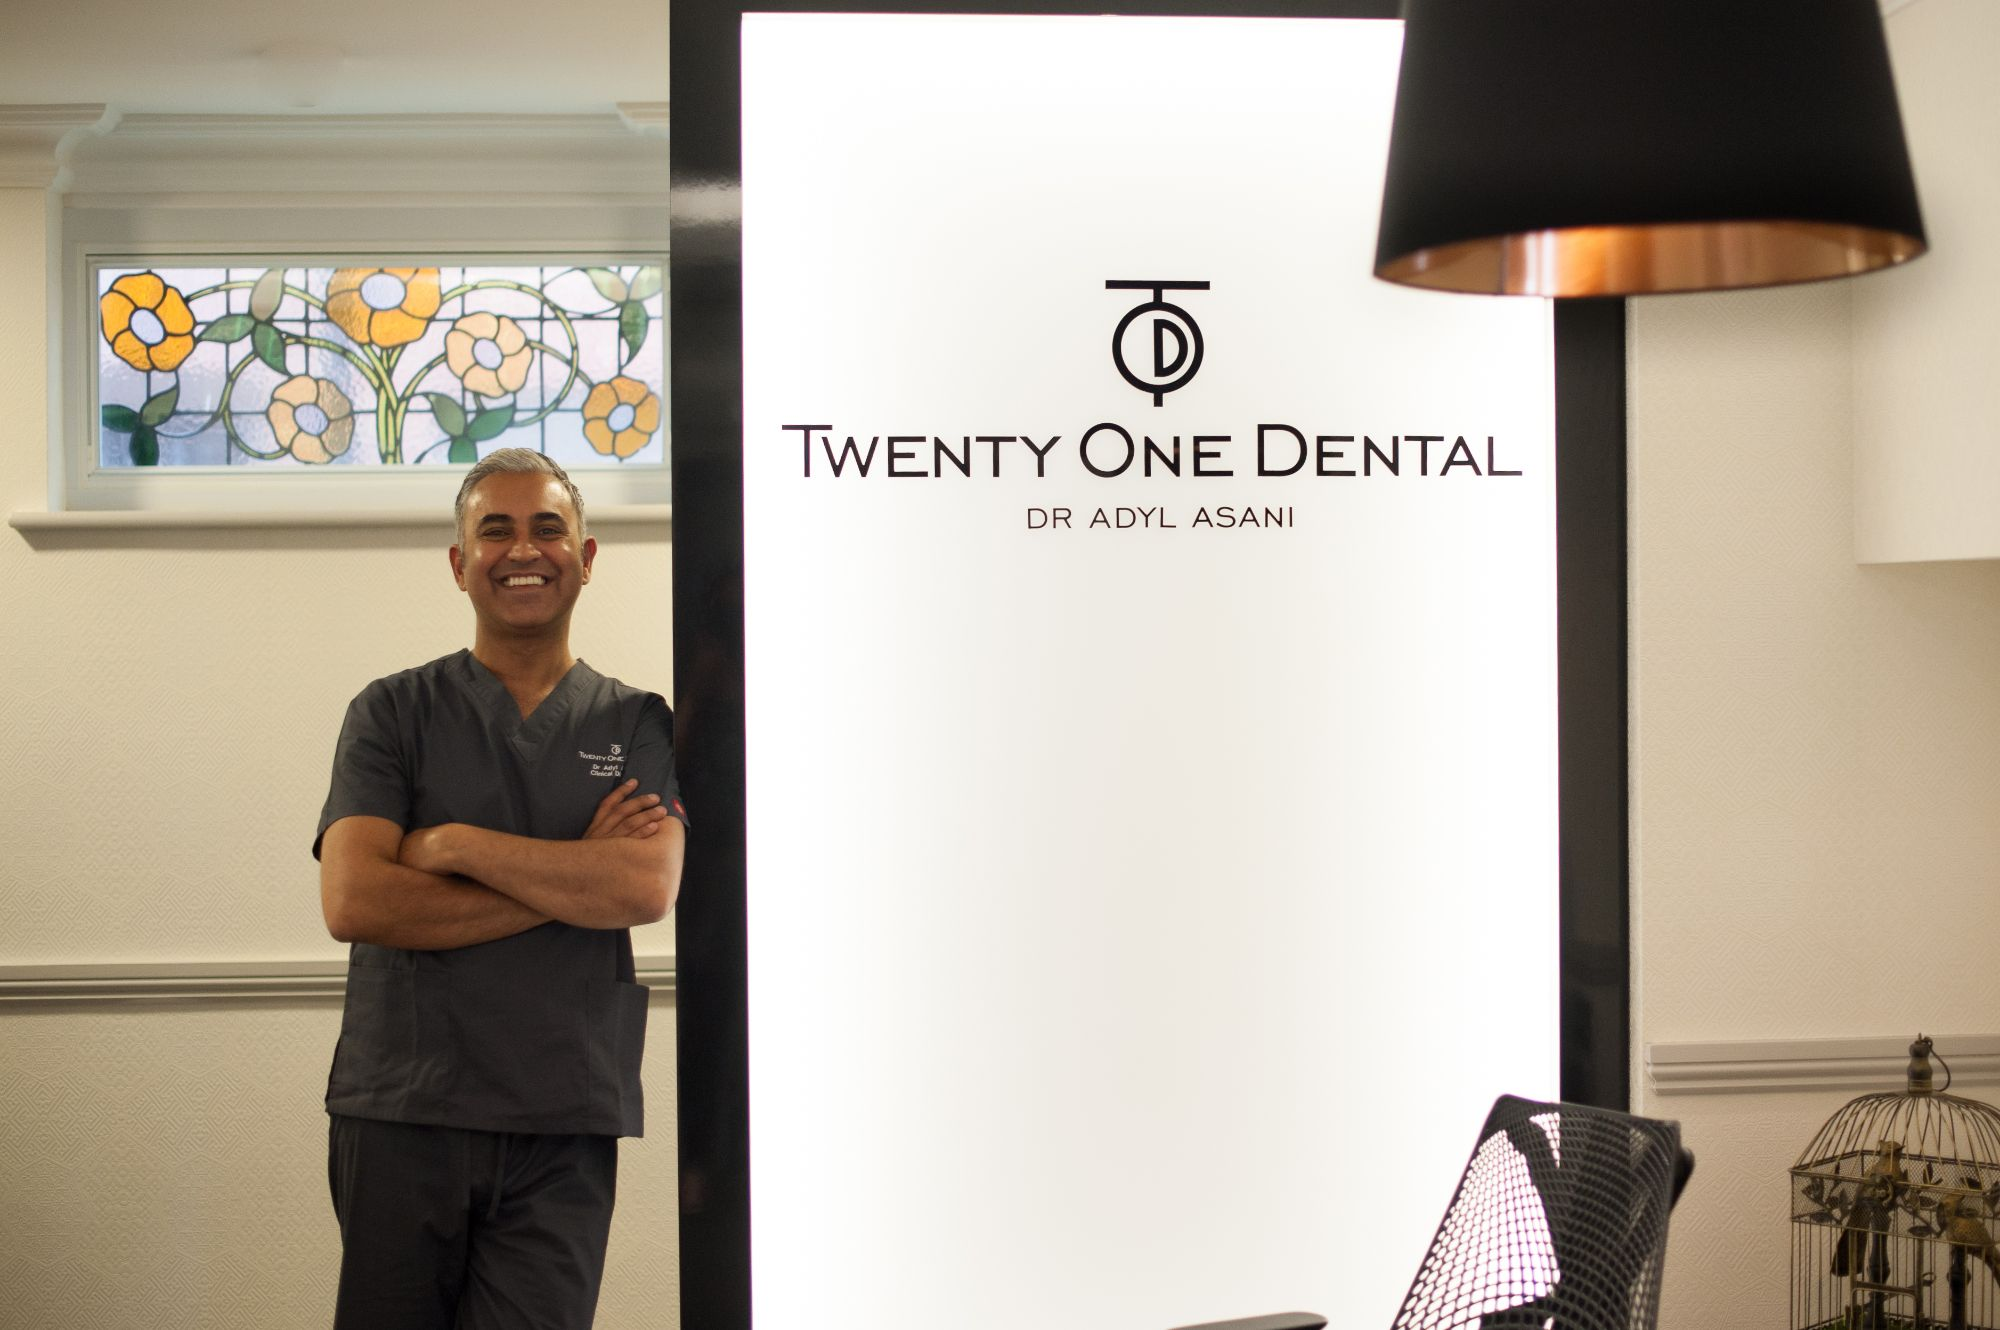 Twenty One Dental Hove